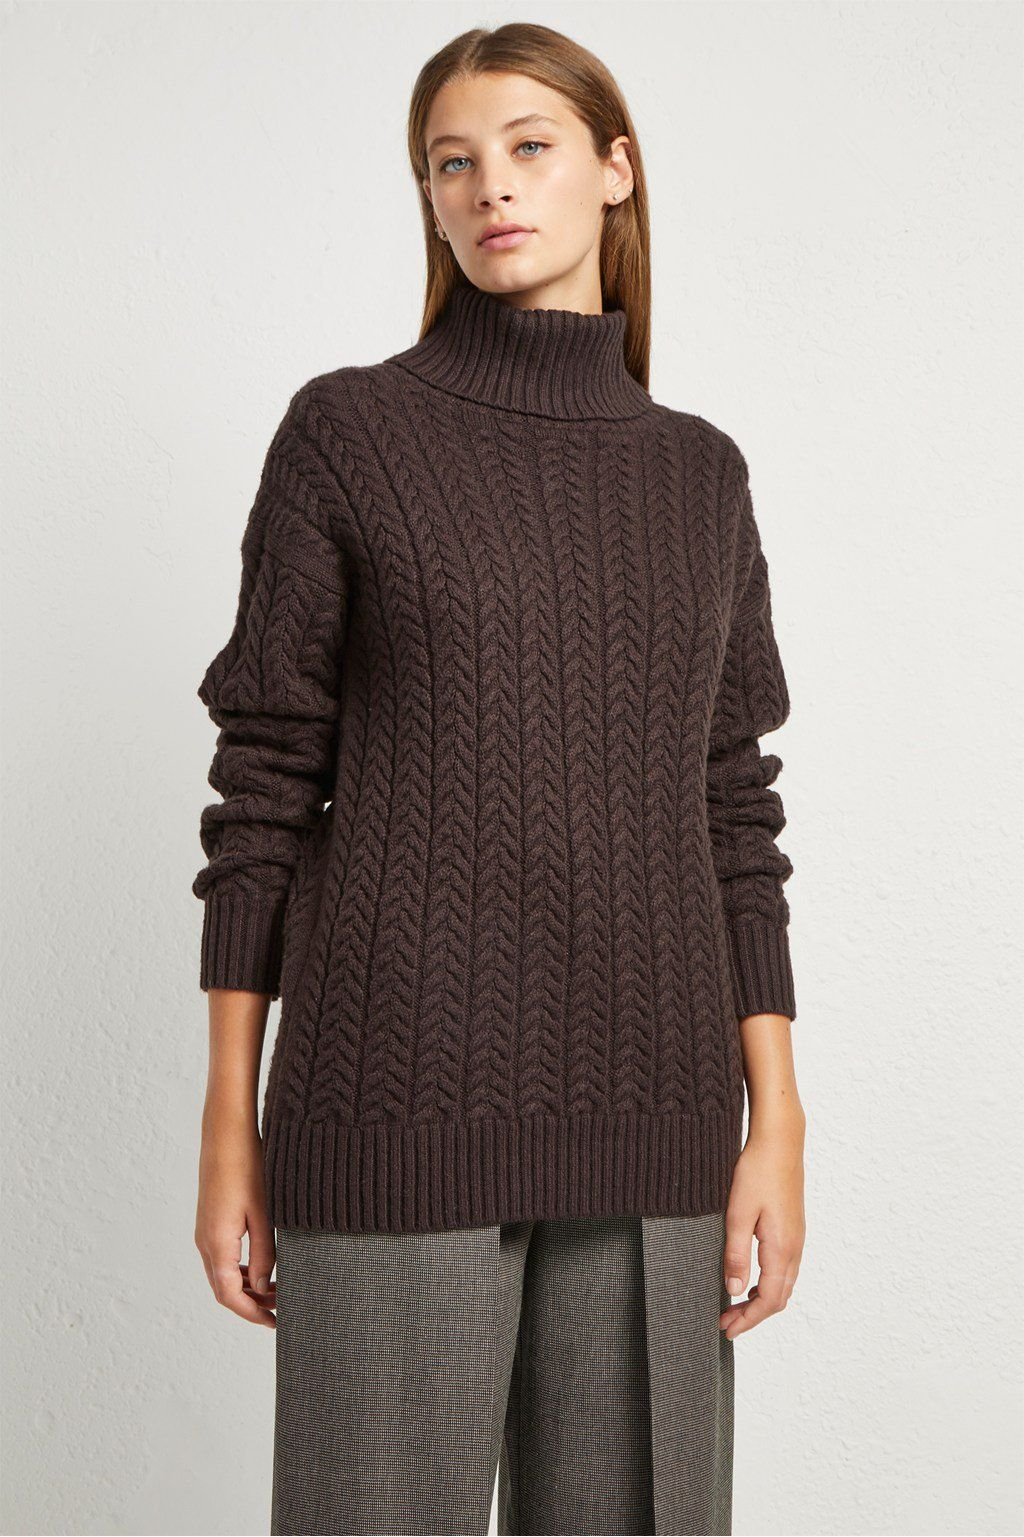 502476d0b8941c Rita Cable Knit Jumper in 2018